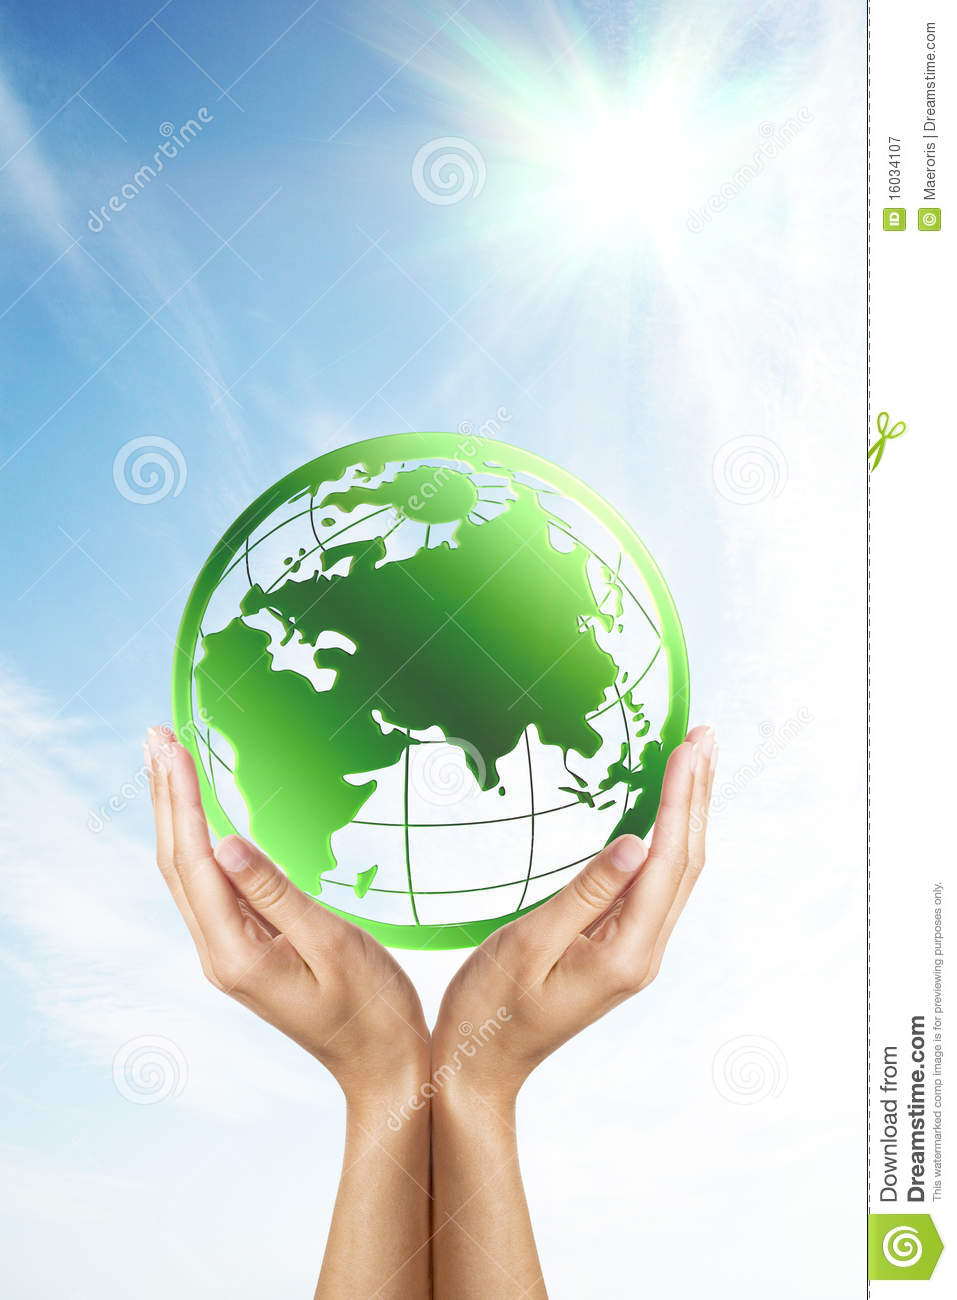 Hands Holding A Green Planet Earth Royalty Free Stock